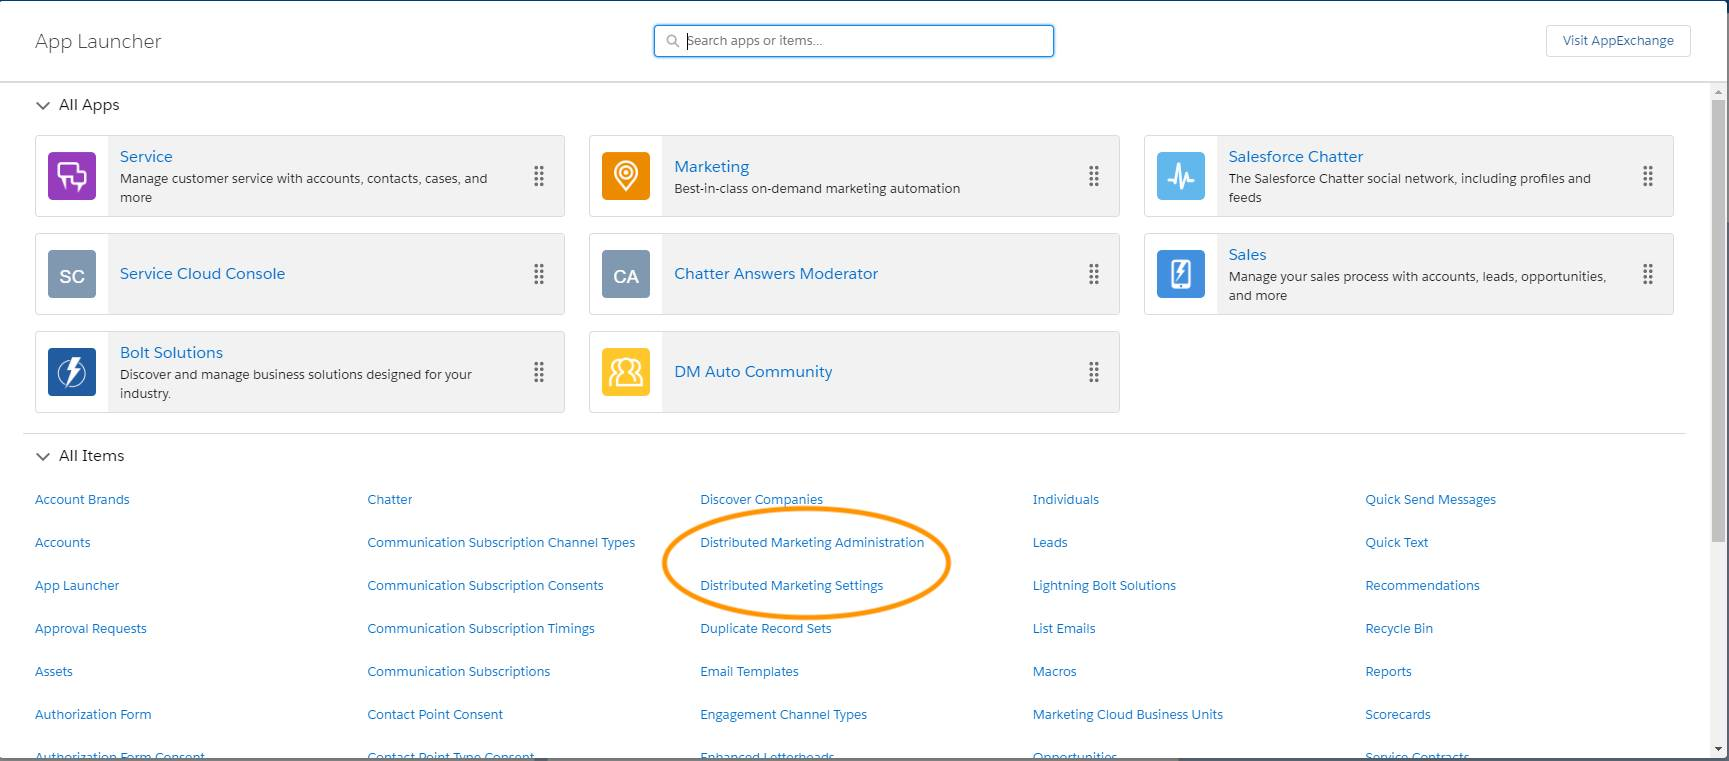 The App Launcher with Distributed Marketing Administration and Distributed Marketing Settings highlighted.